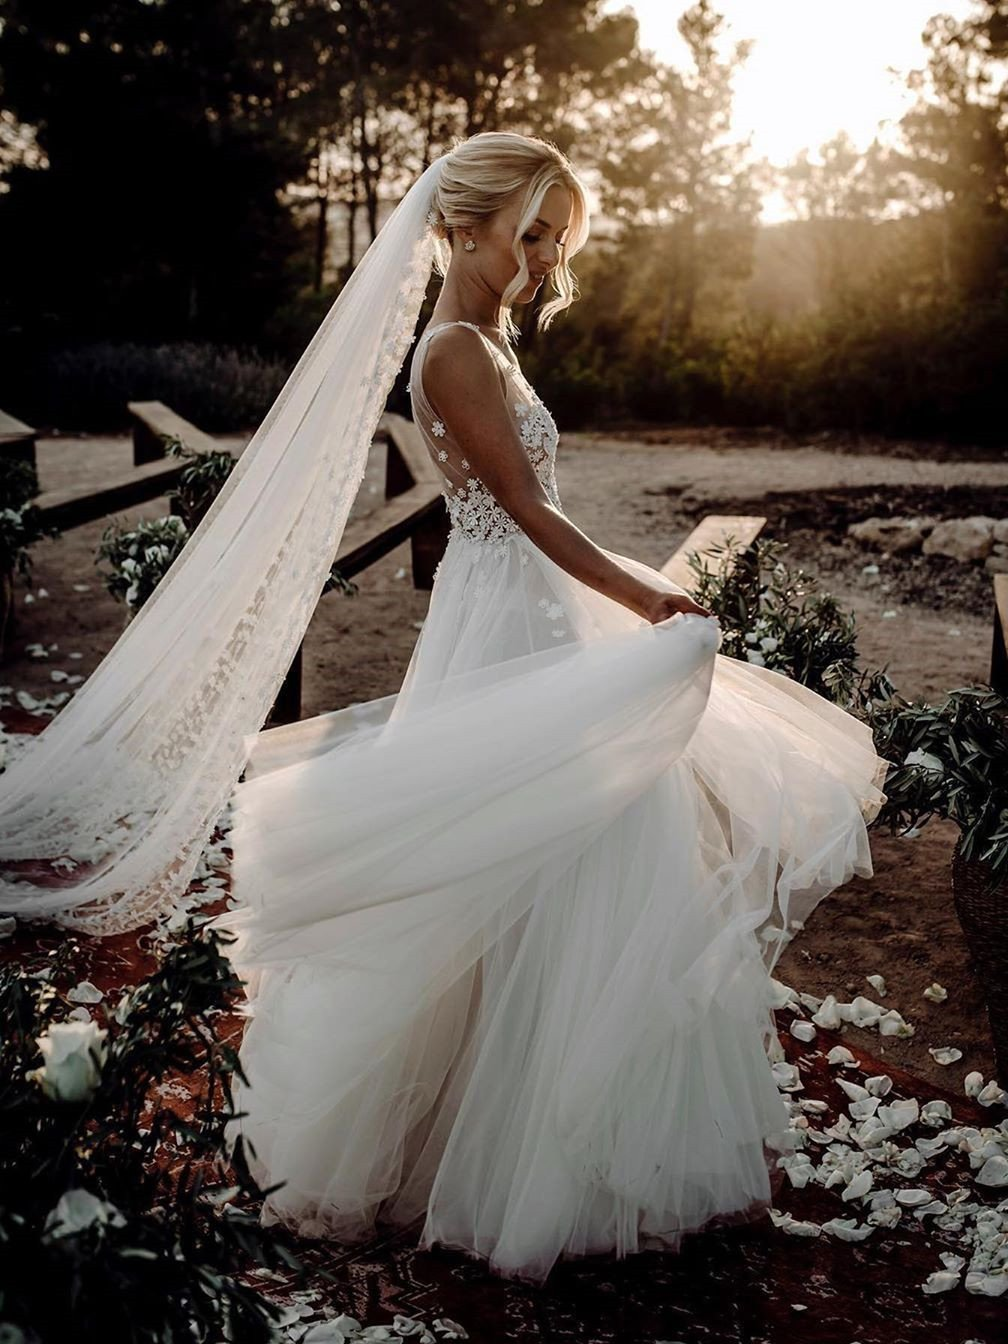 Marvelous V-neck A-line Wedding Dresses With Flowers Tulle Gowns JKB5106|Annapromdress